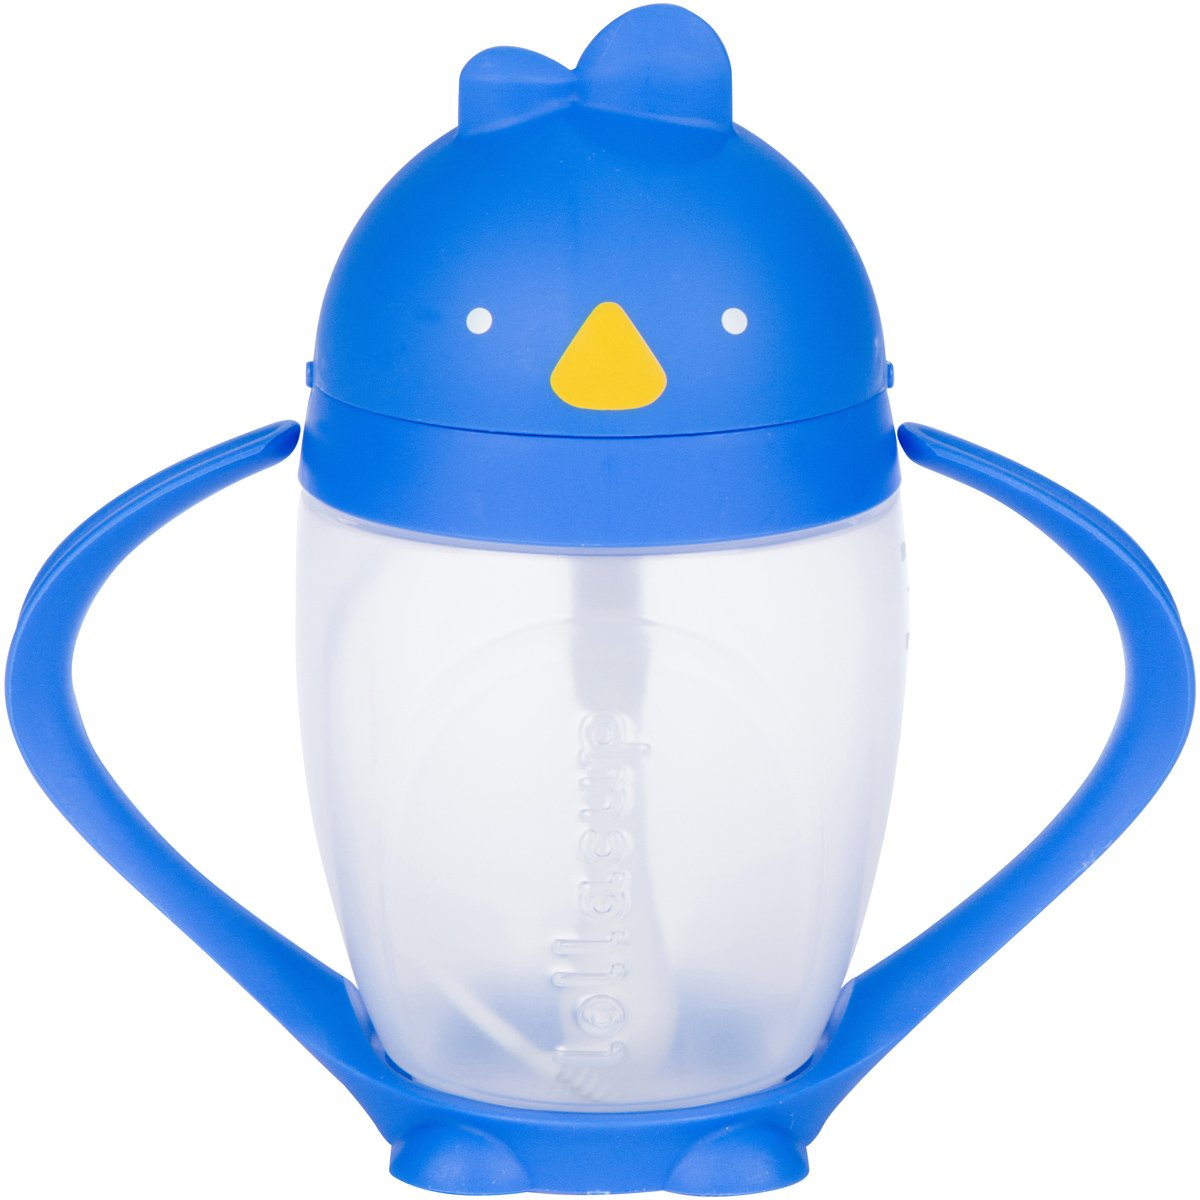 Lollaland Weighted Straw Sippy Cup | Lollacup - Sippy Cups for Toddlers | Shark Tank Products - Best Sippy Cups for Baby Infant & Toddler Ages | Bottle Transition Cups w/Straws by Lollaland